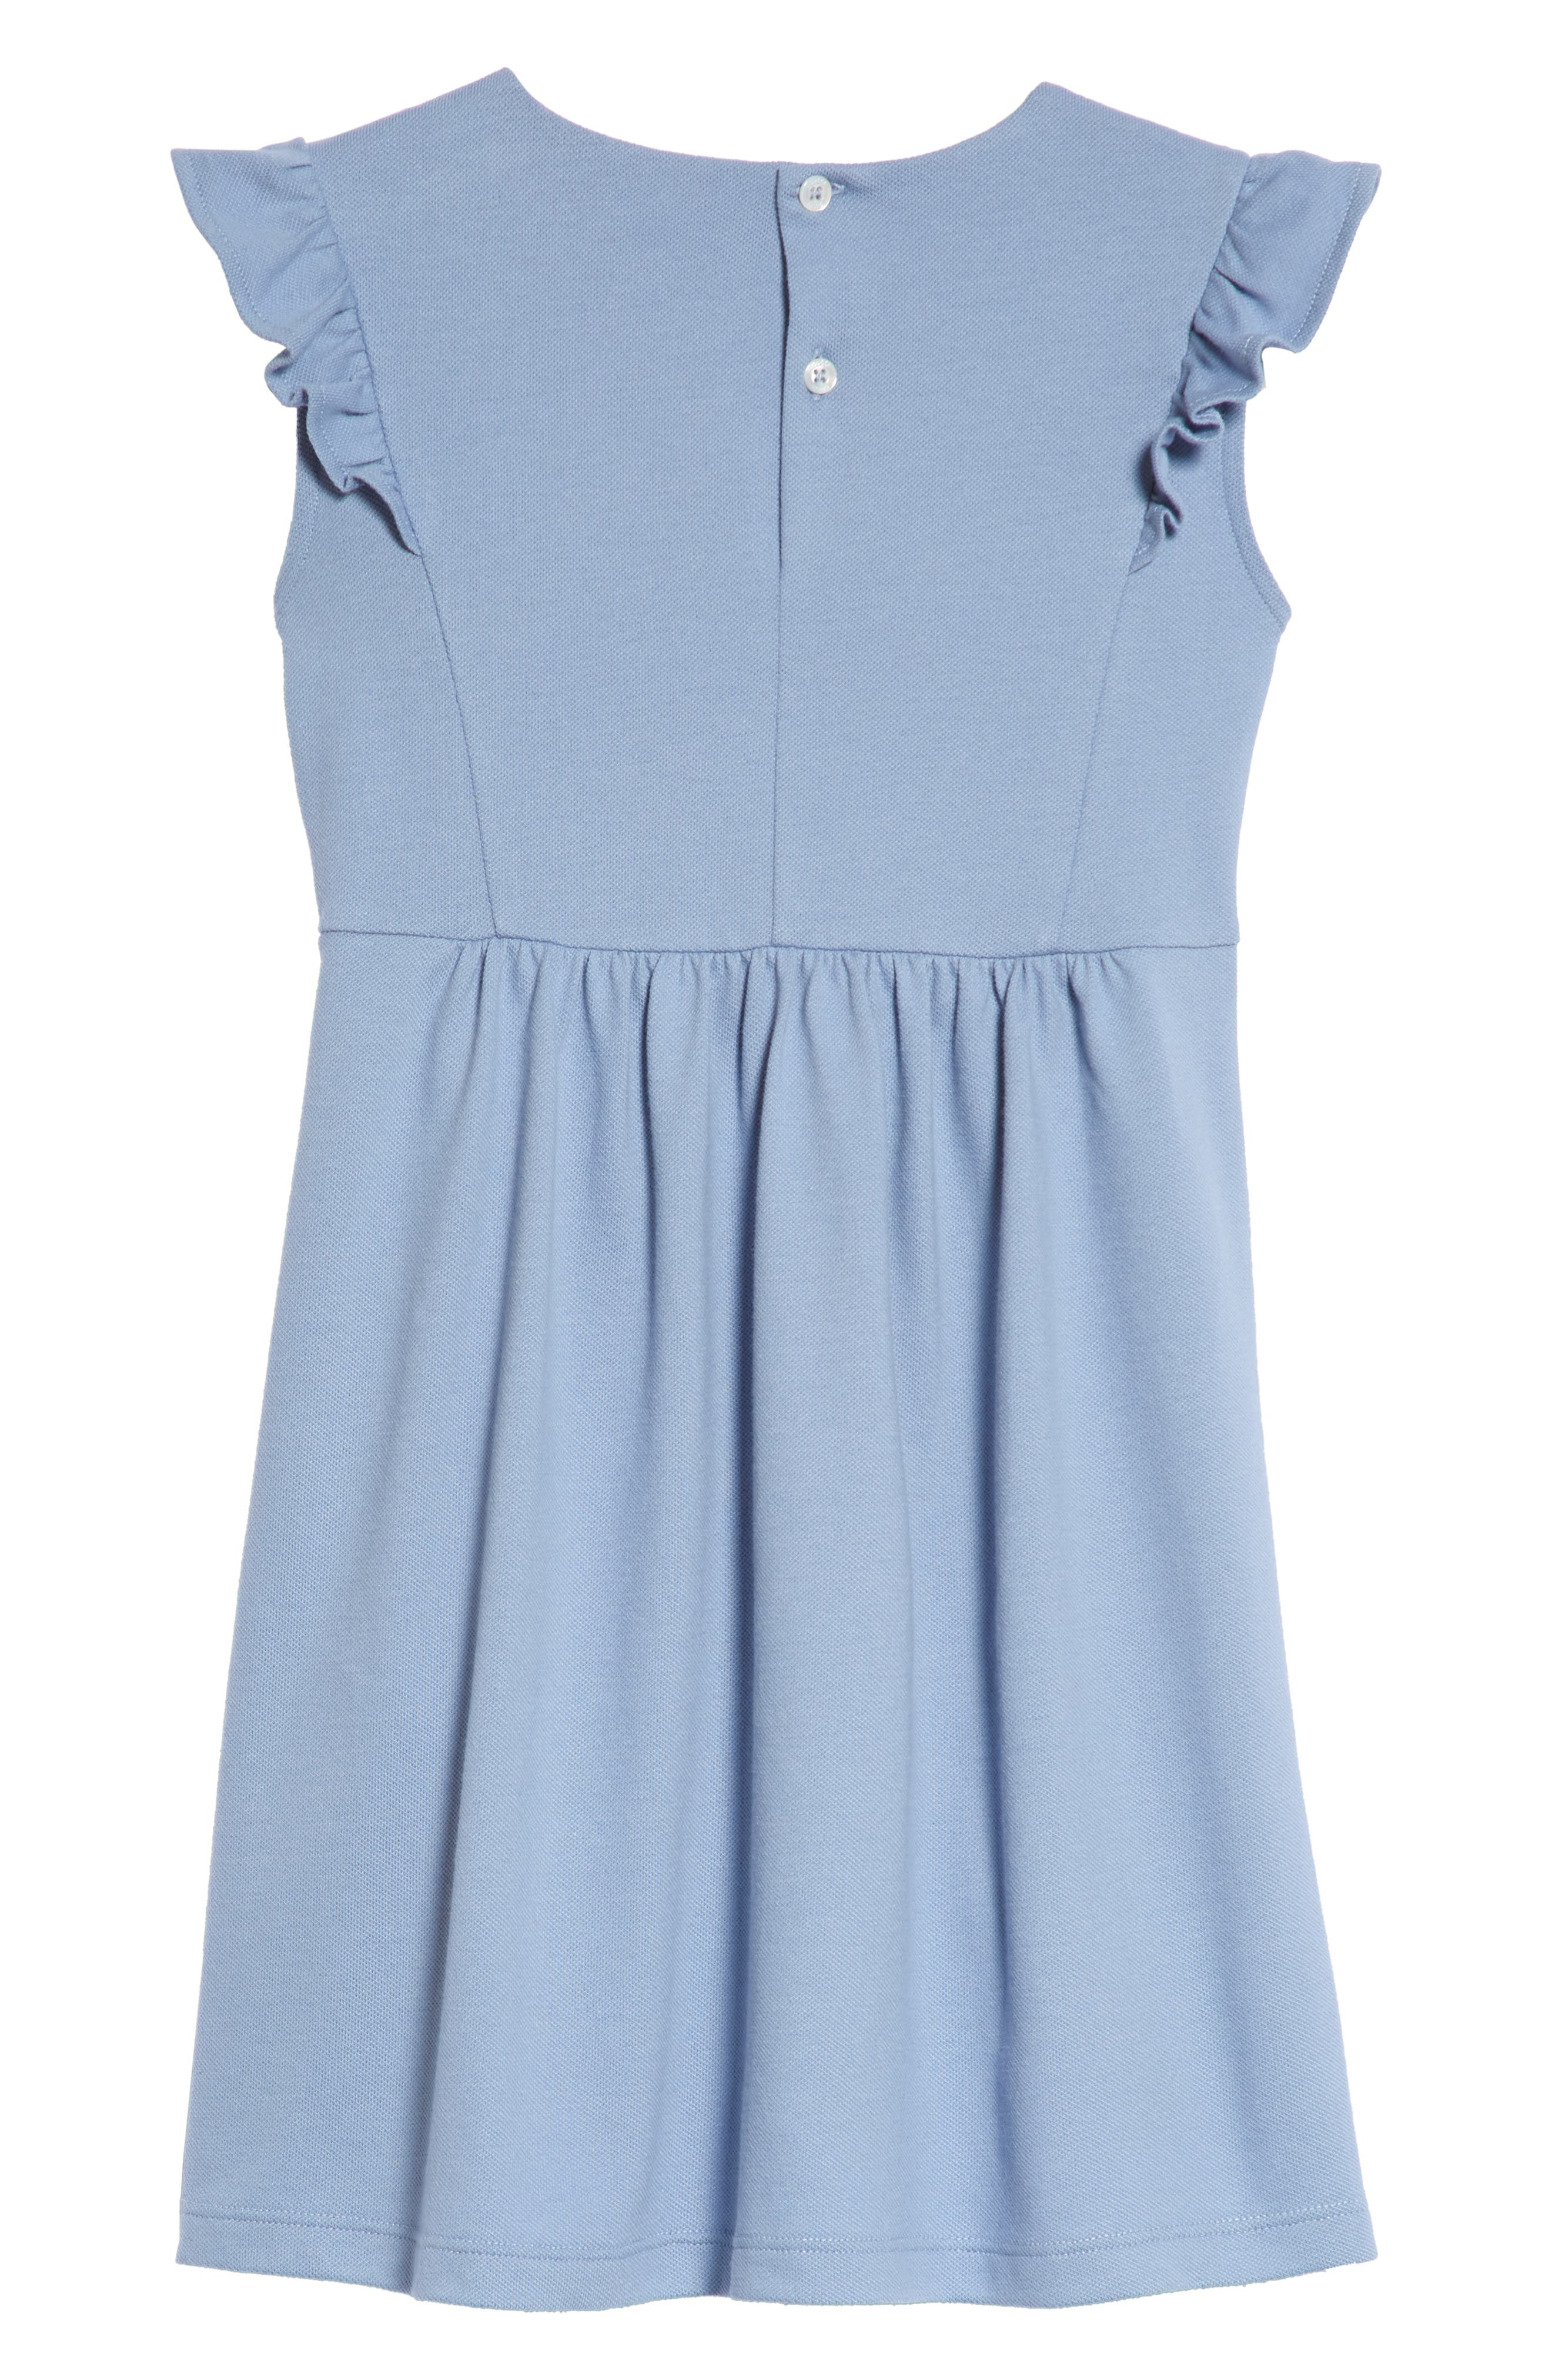 Girls\' Gucci Dresses & Rompers: Everyday & Special Occasion | Nordstrom